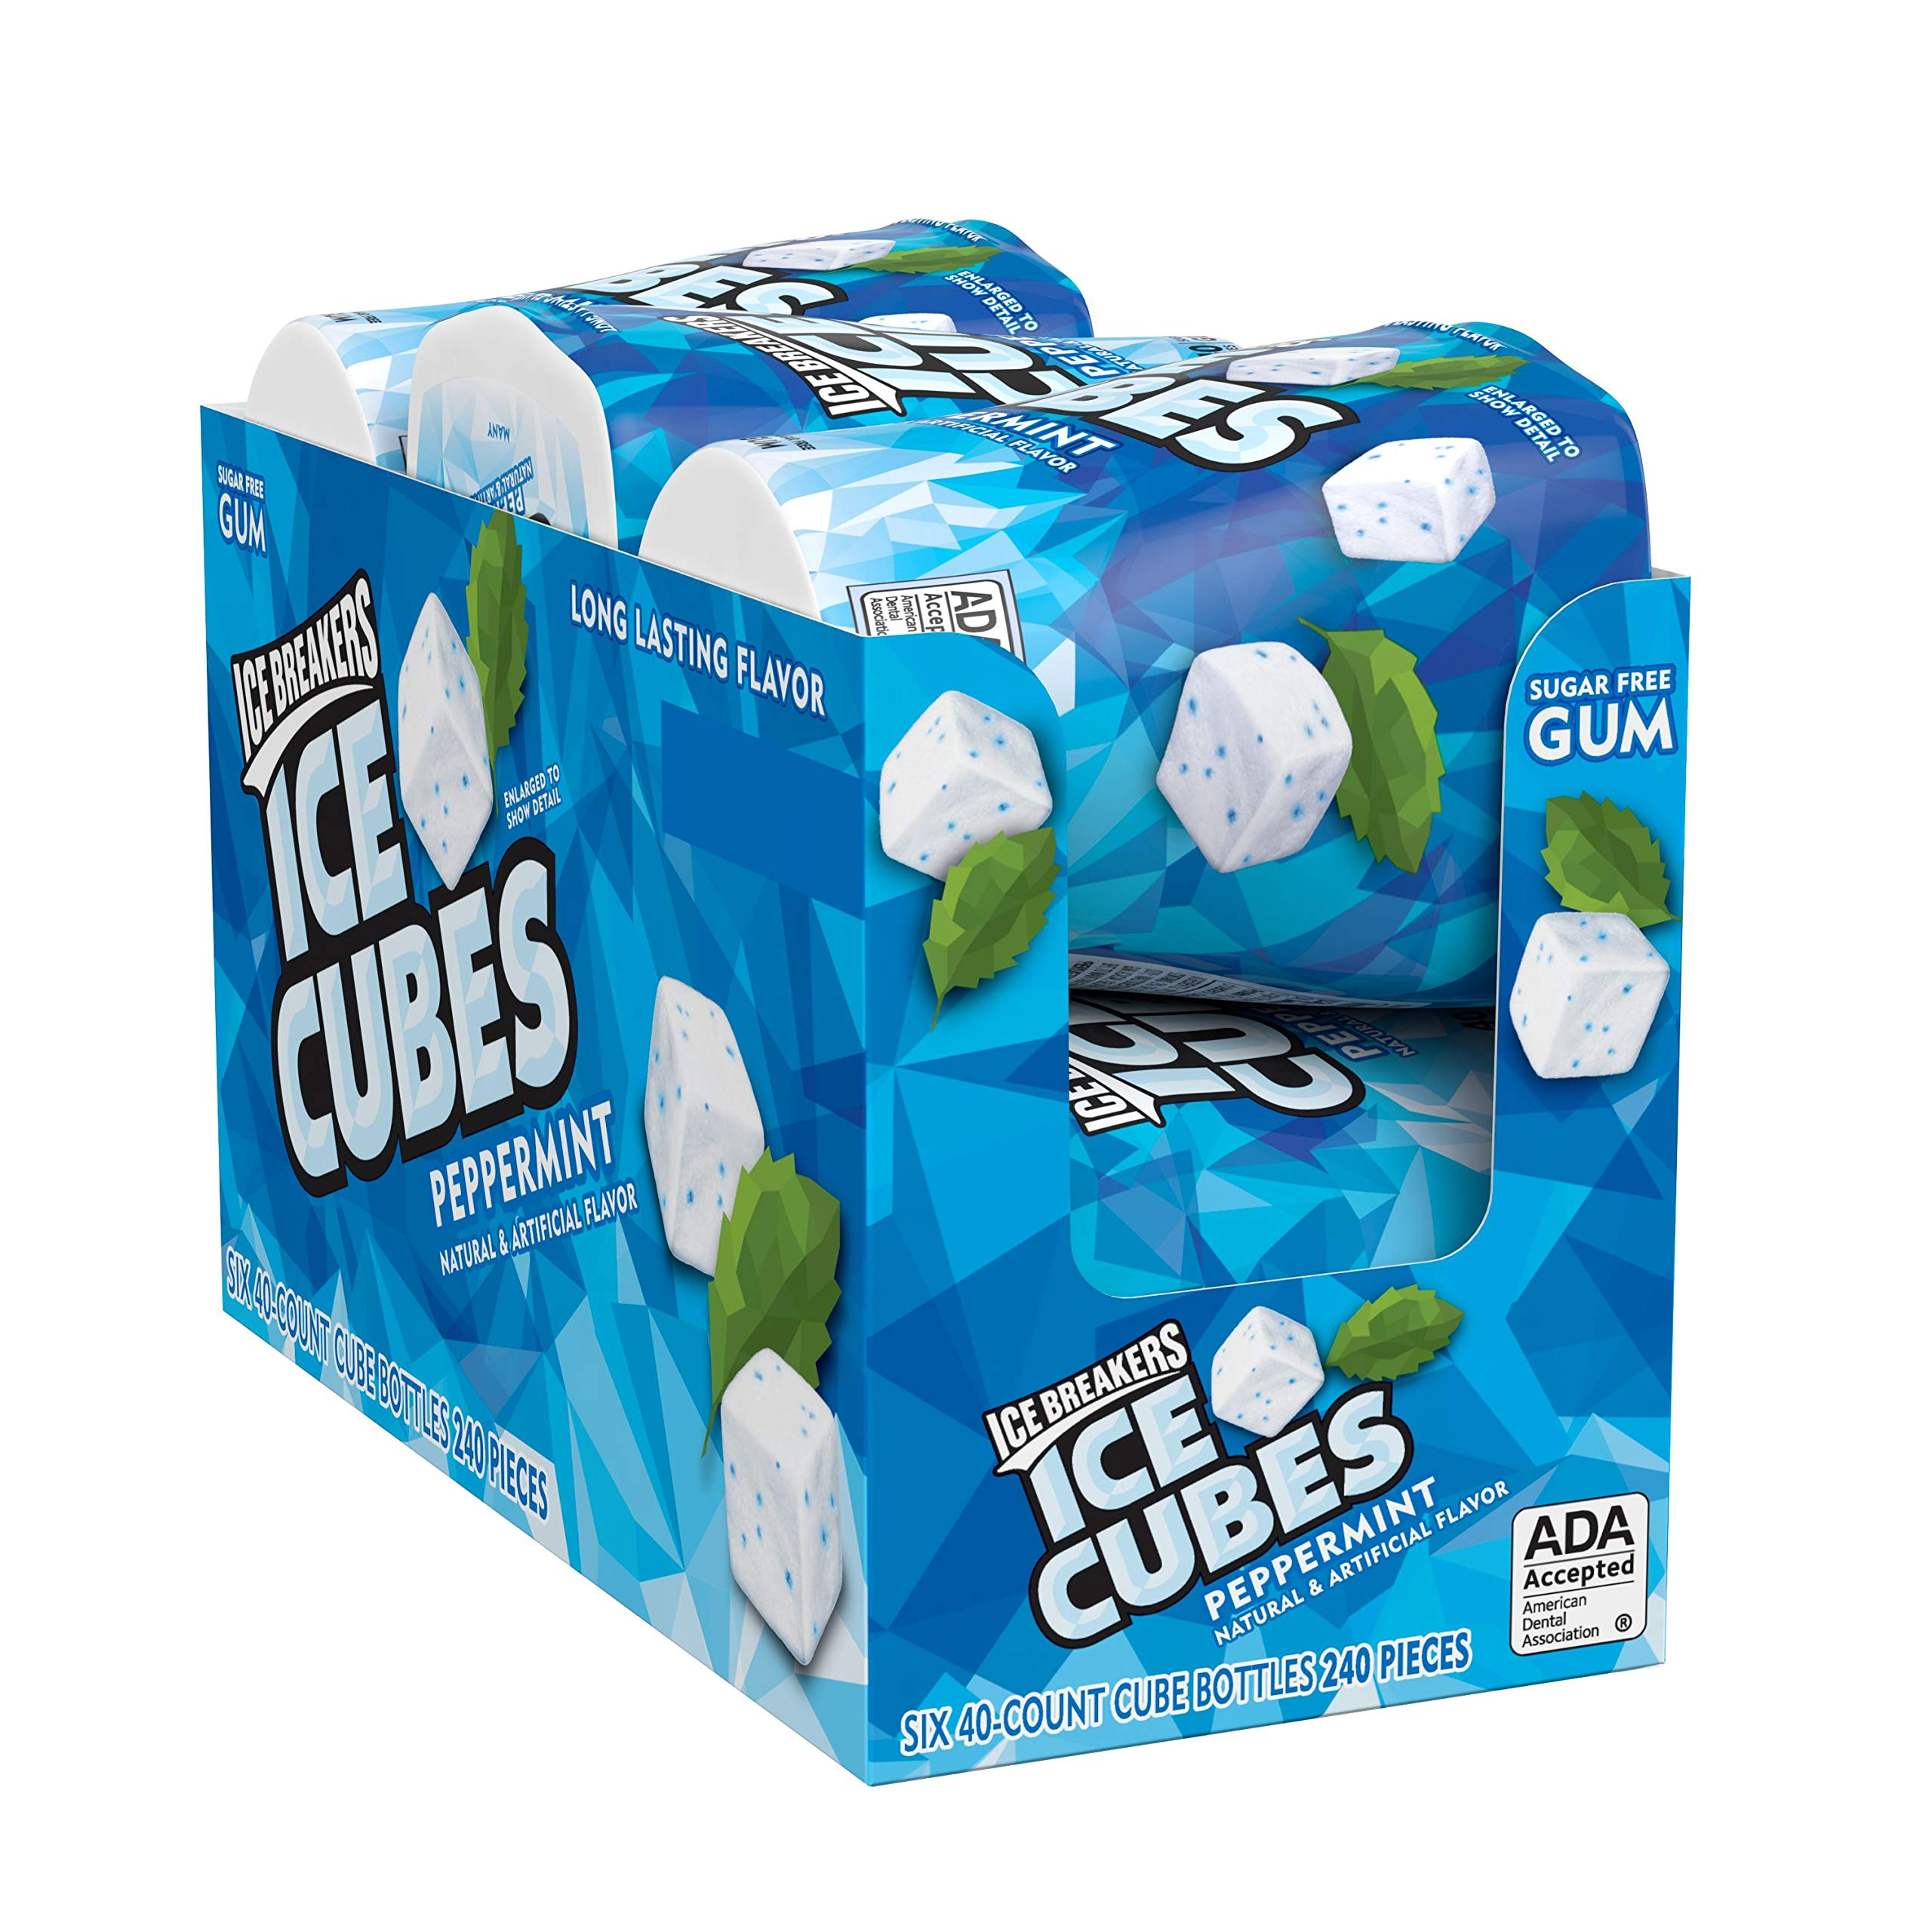 ICE BREAKERS ICE CUBES Peppermint Flavored Sugar Free Chewing Gum